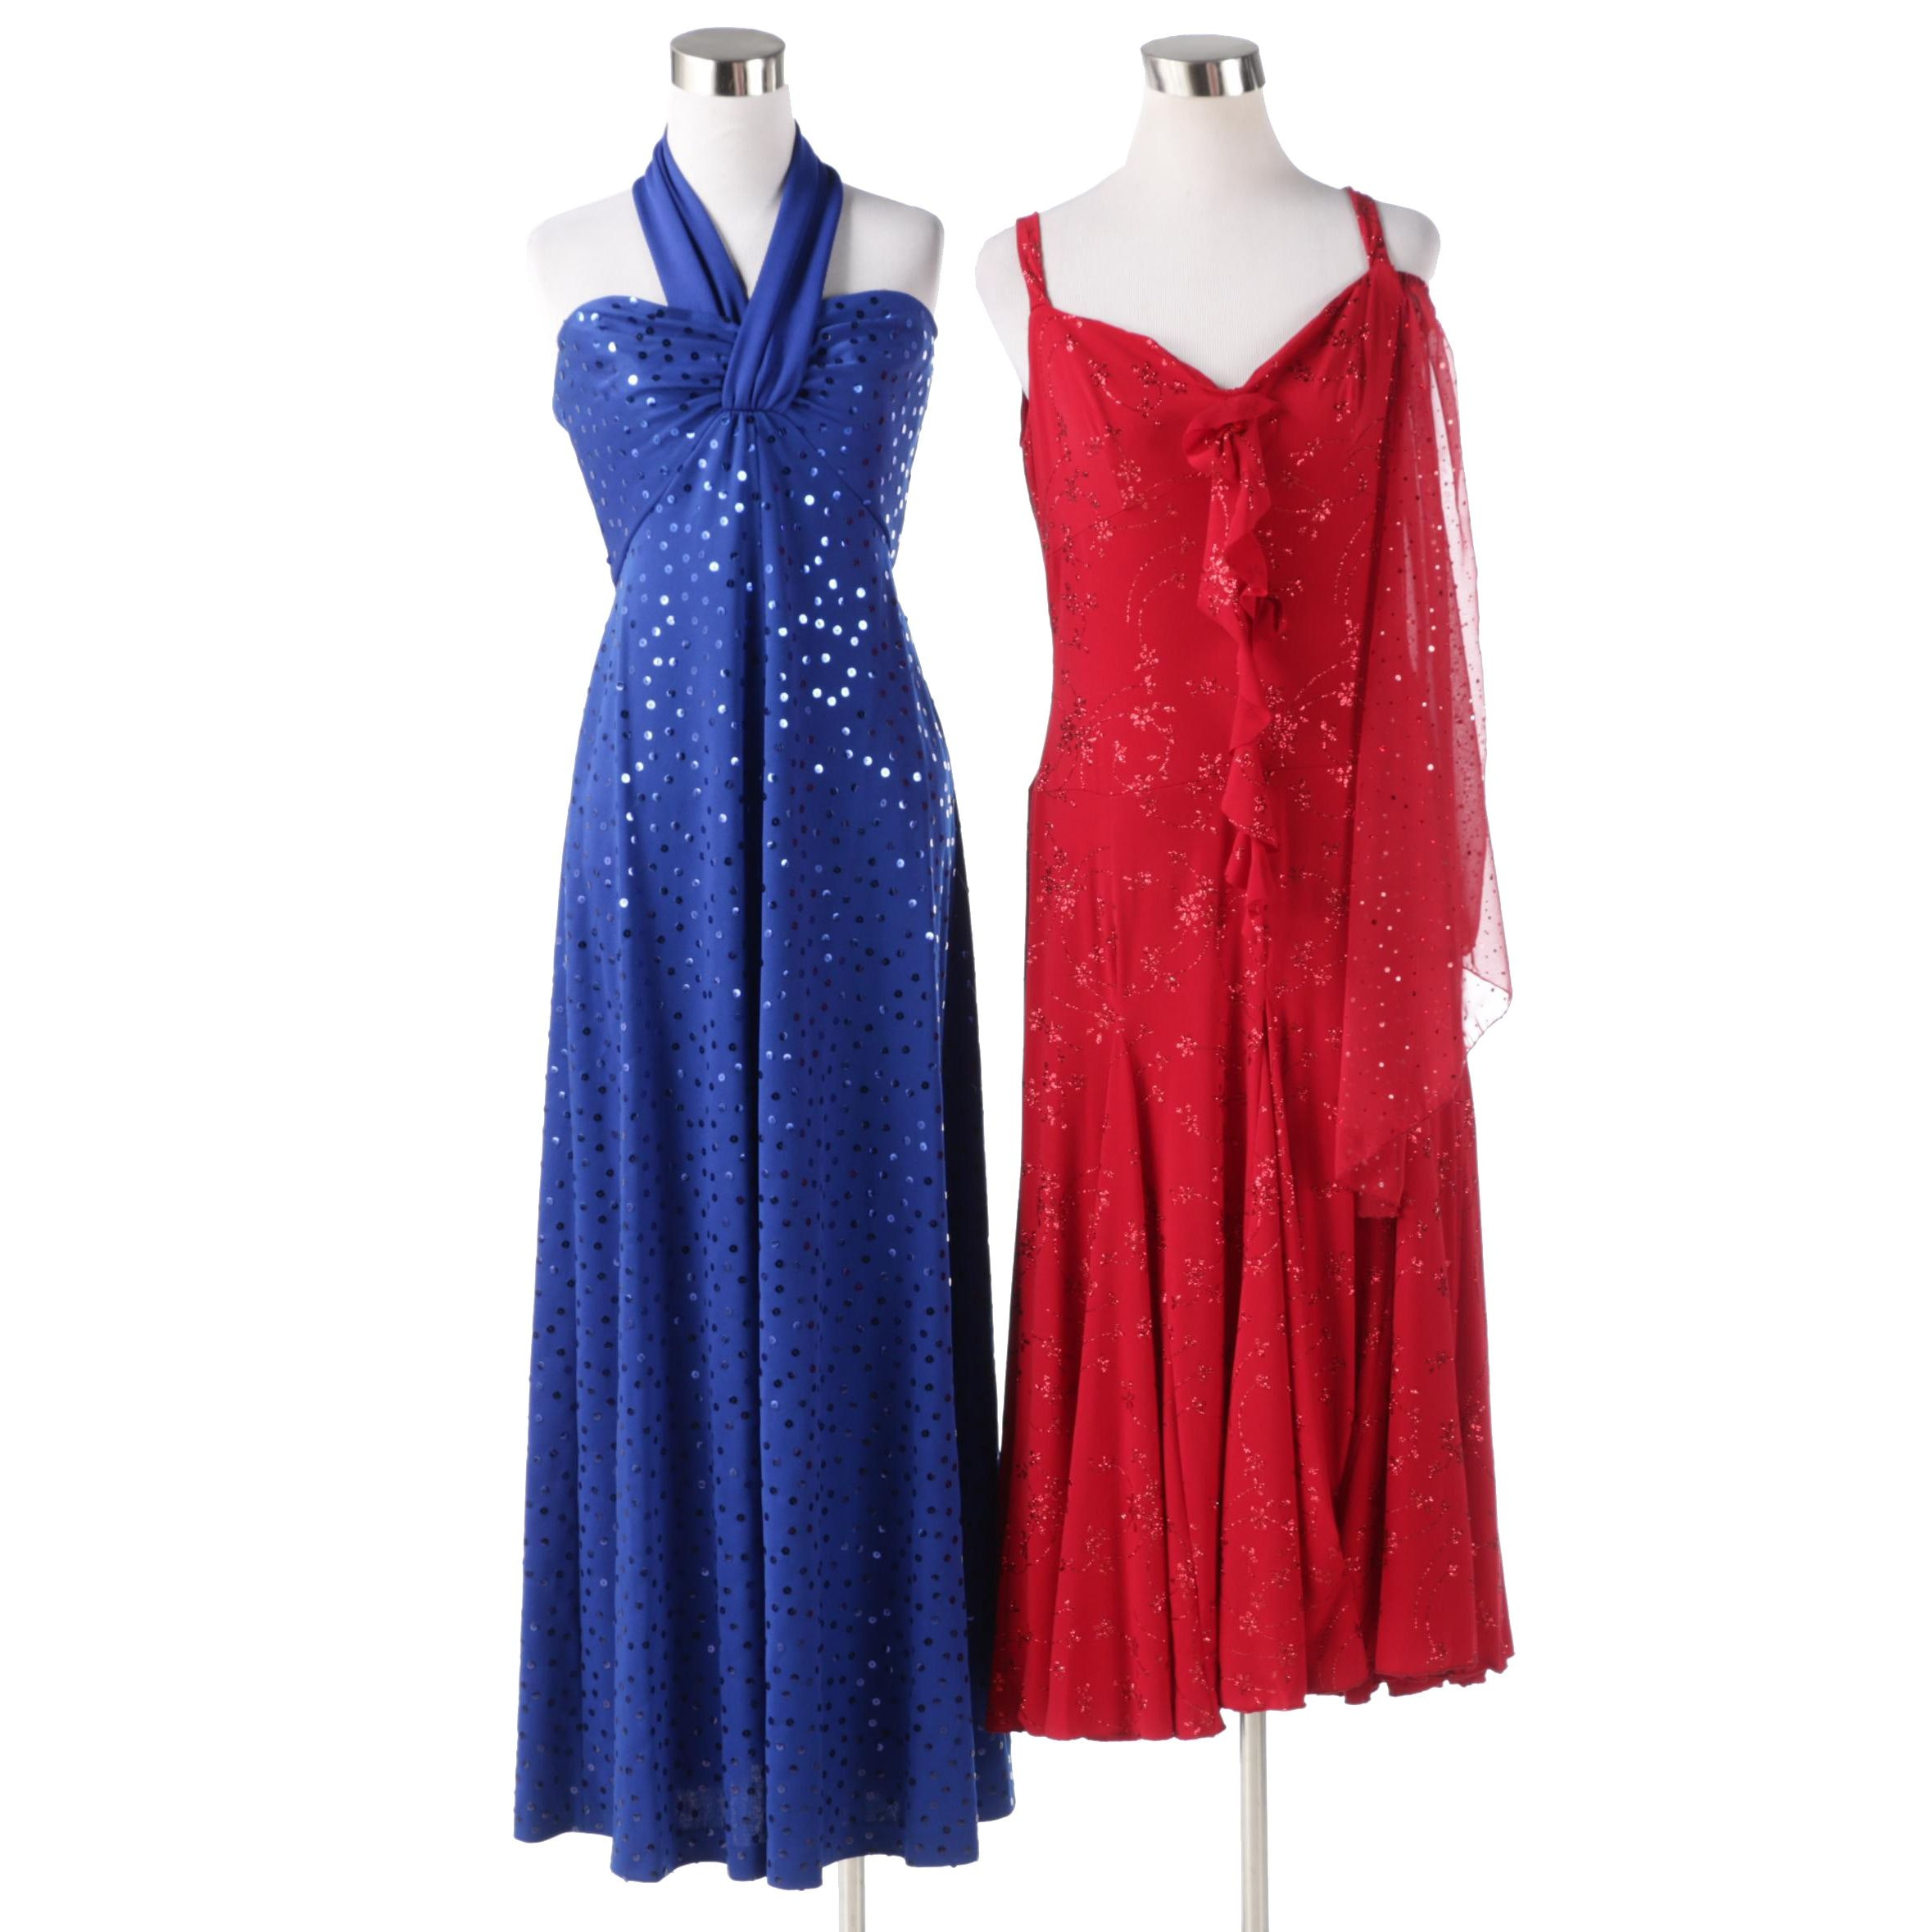 Cocktail and Dancing Evening Dresses with Embellishments